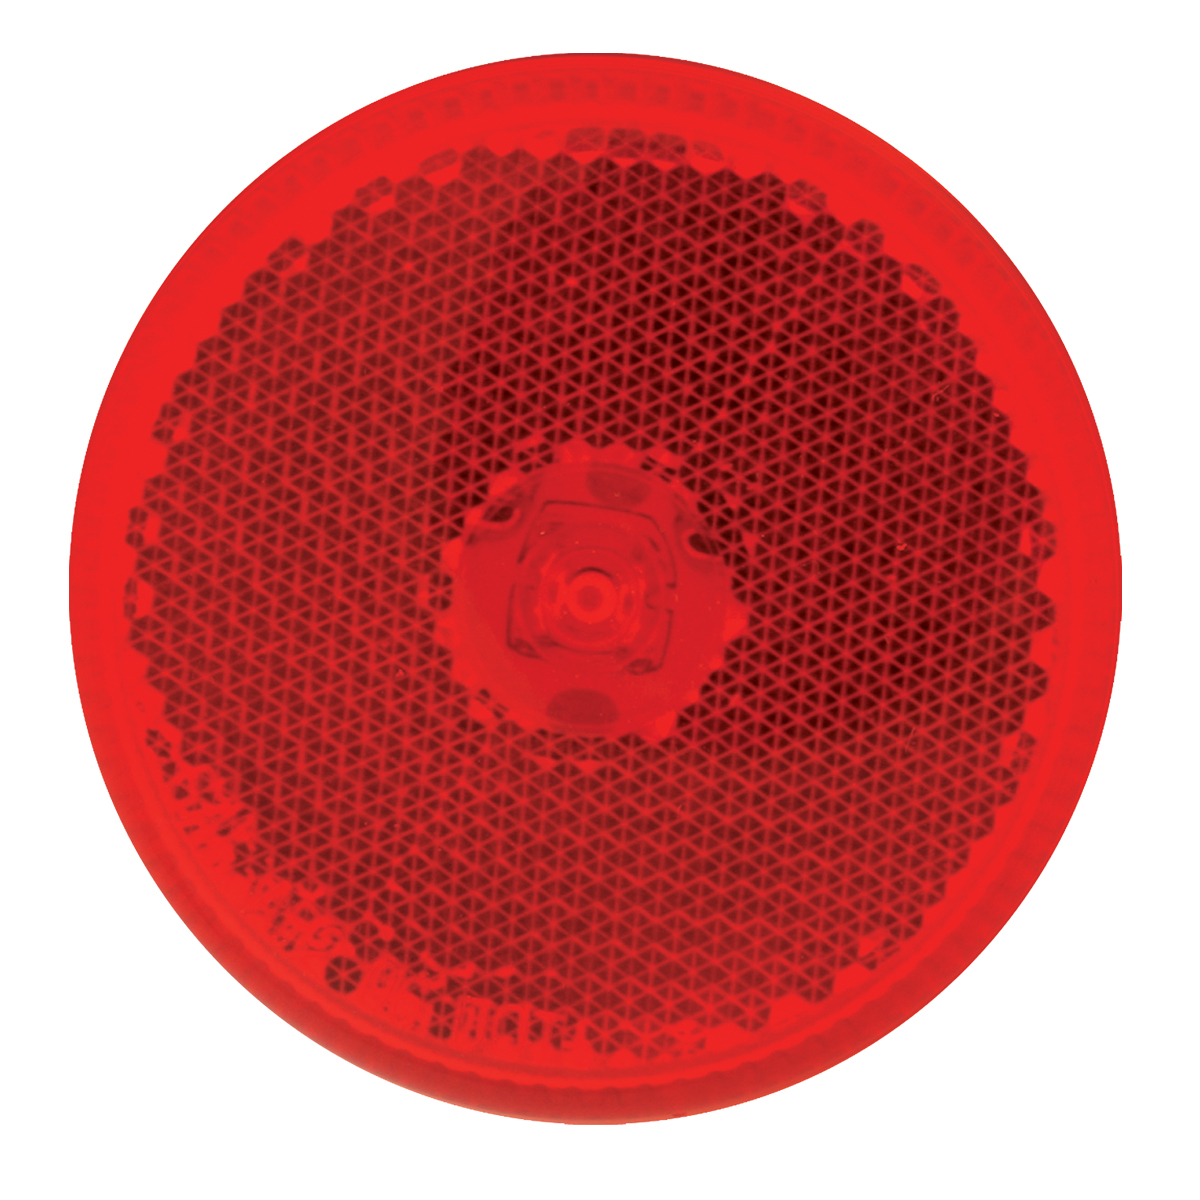 "76422 2.5"" Single LED Marker Light in Red/Red"